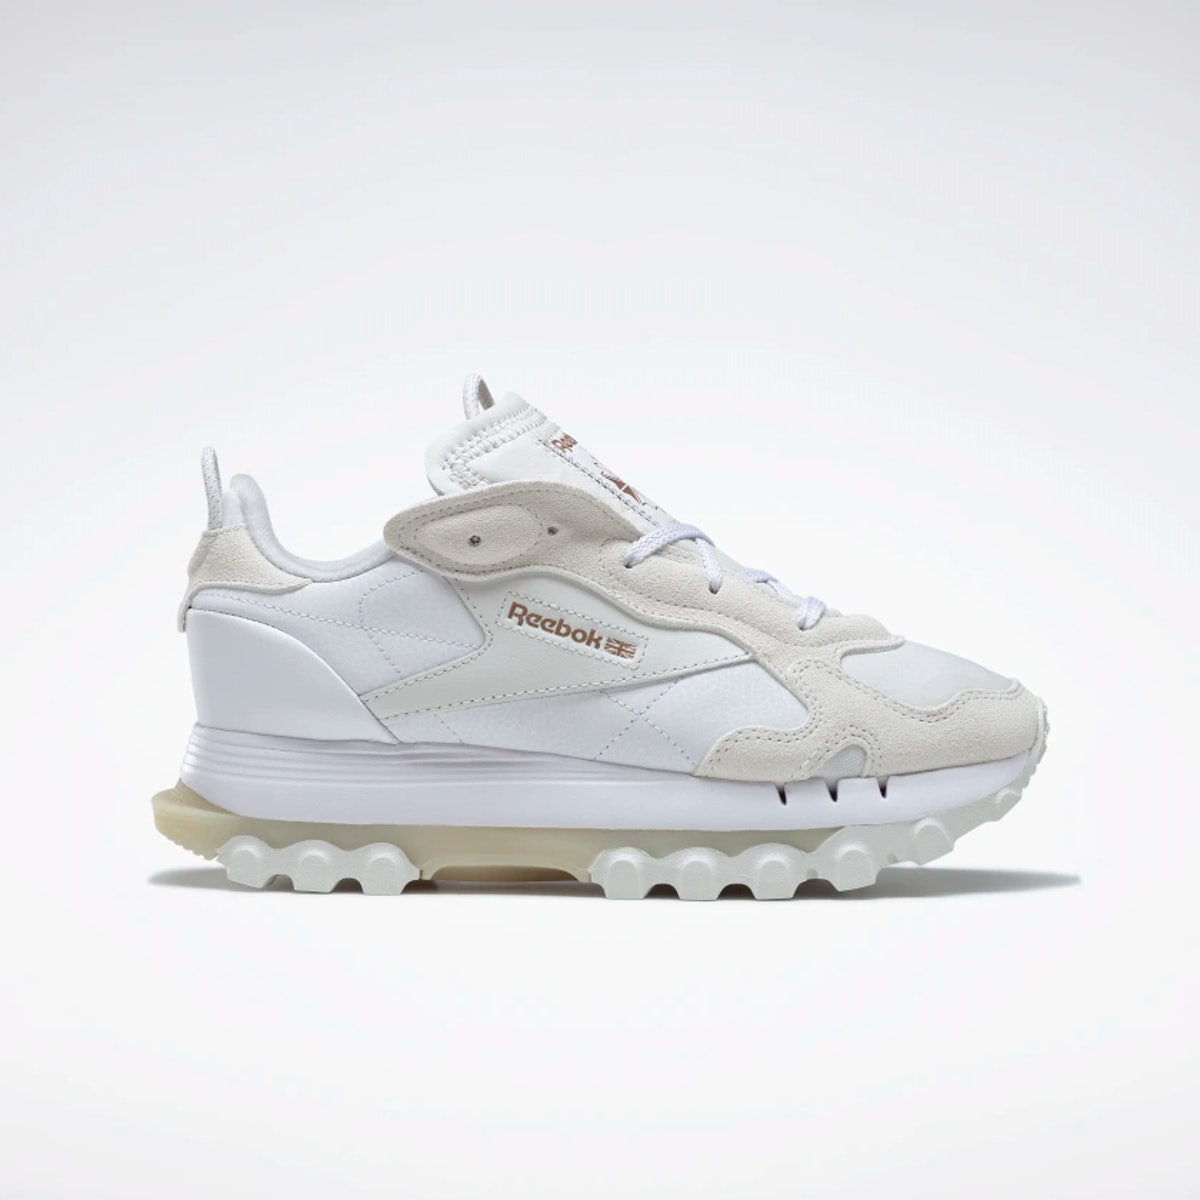 Cardi B's Reebok classic leather women's shoes in white.